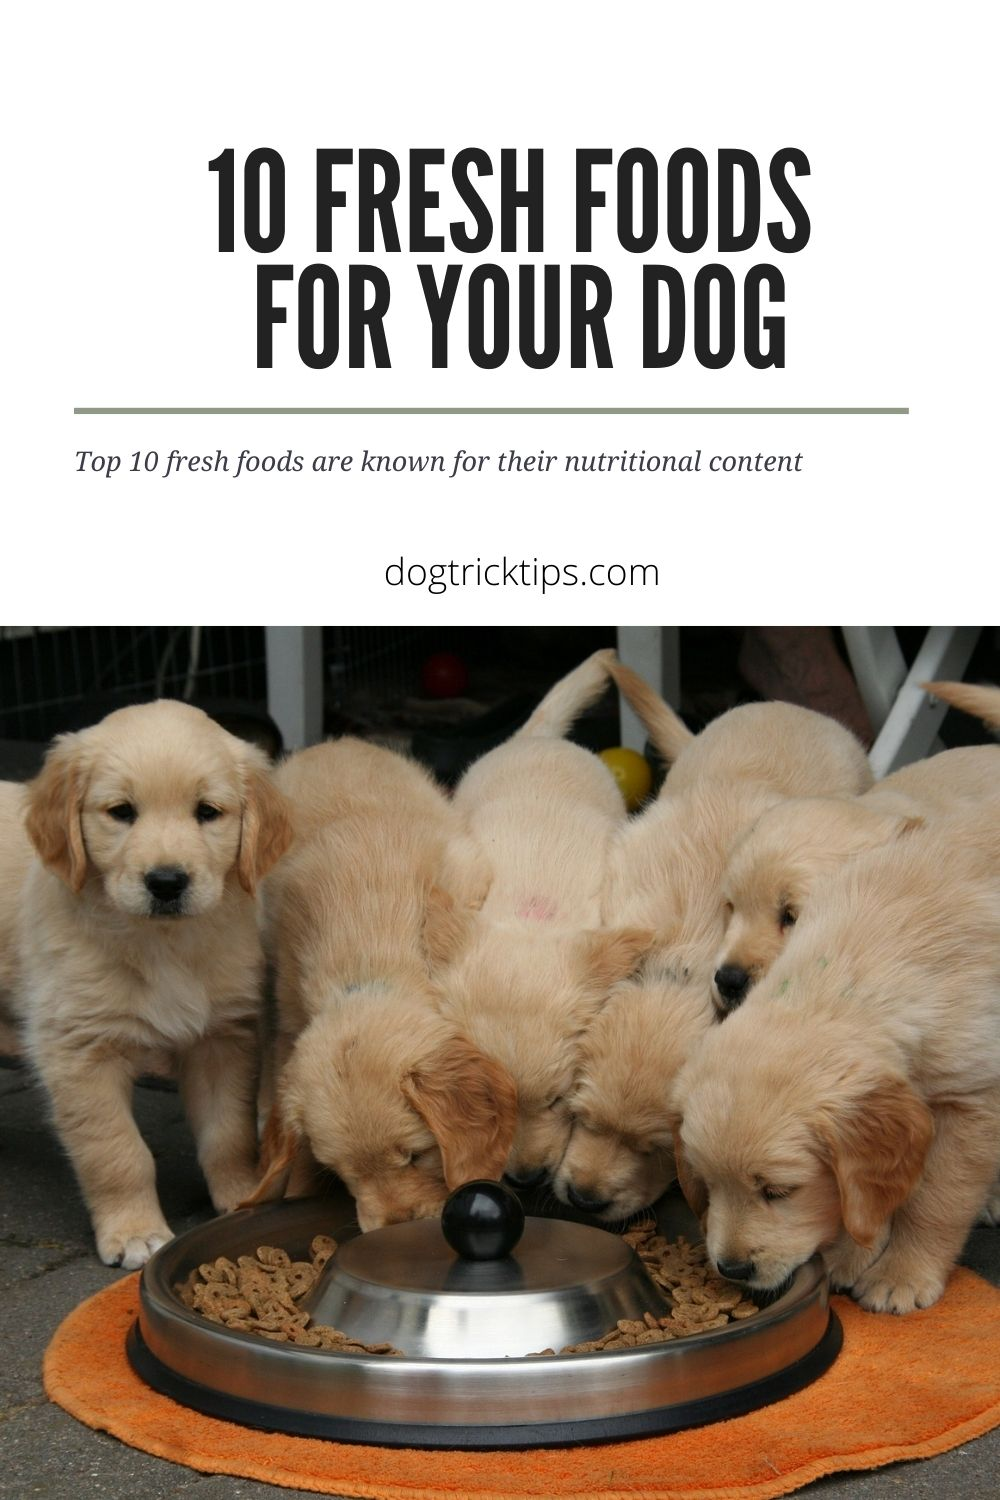 10 Fresh Foods For Your Dog That Promote Health And Cure Common Aliments